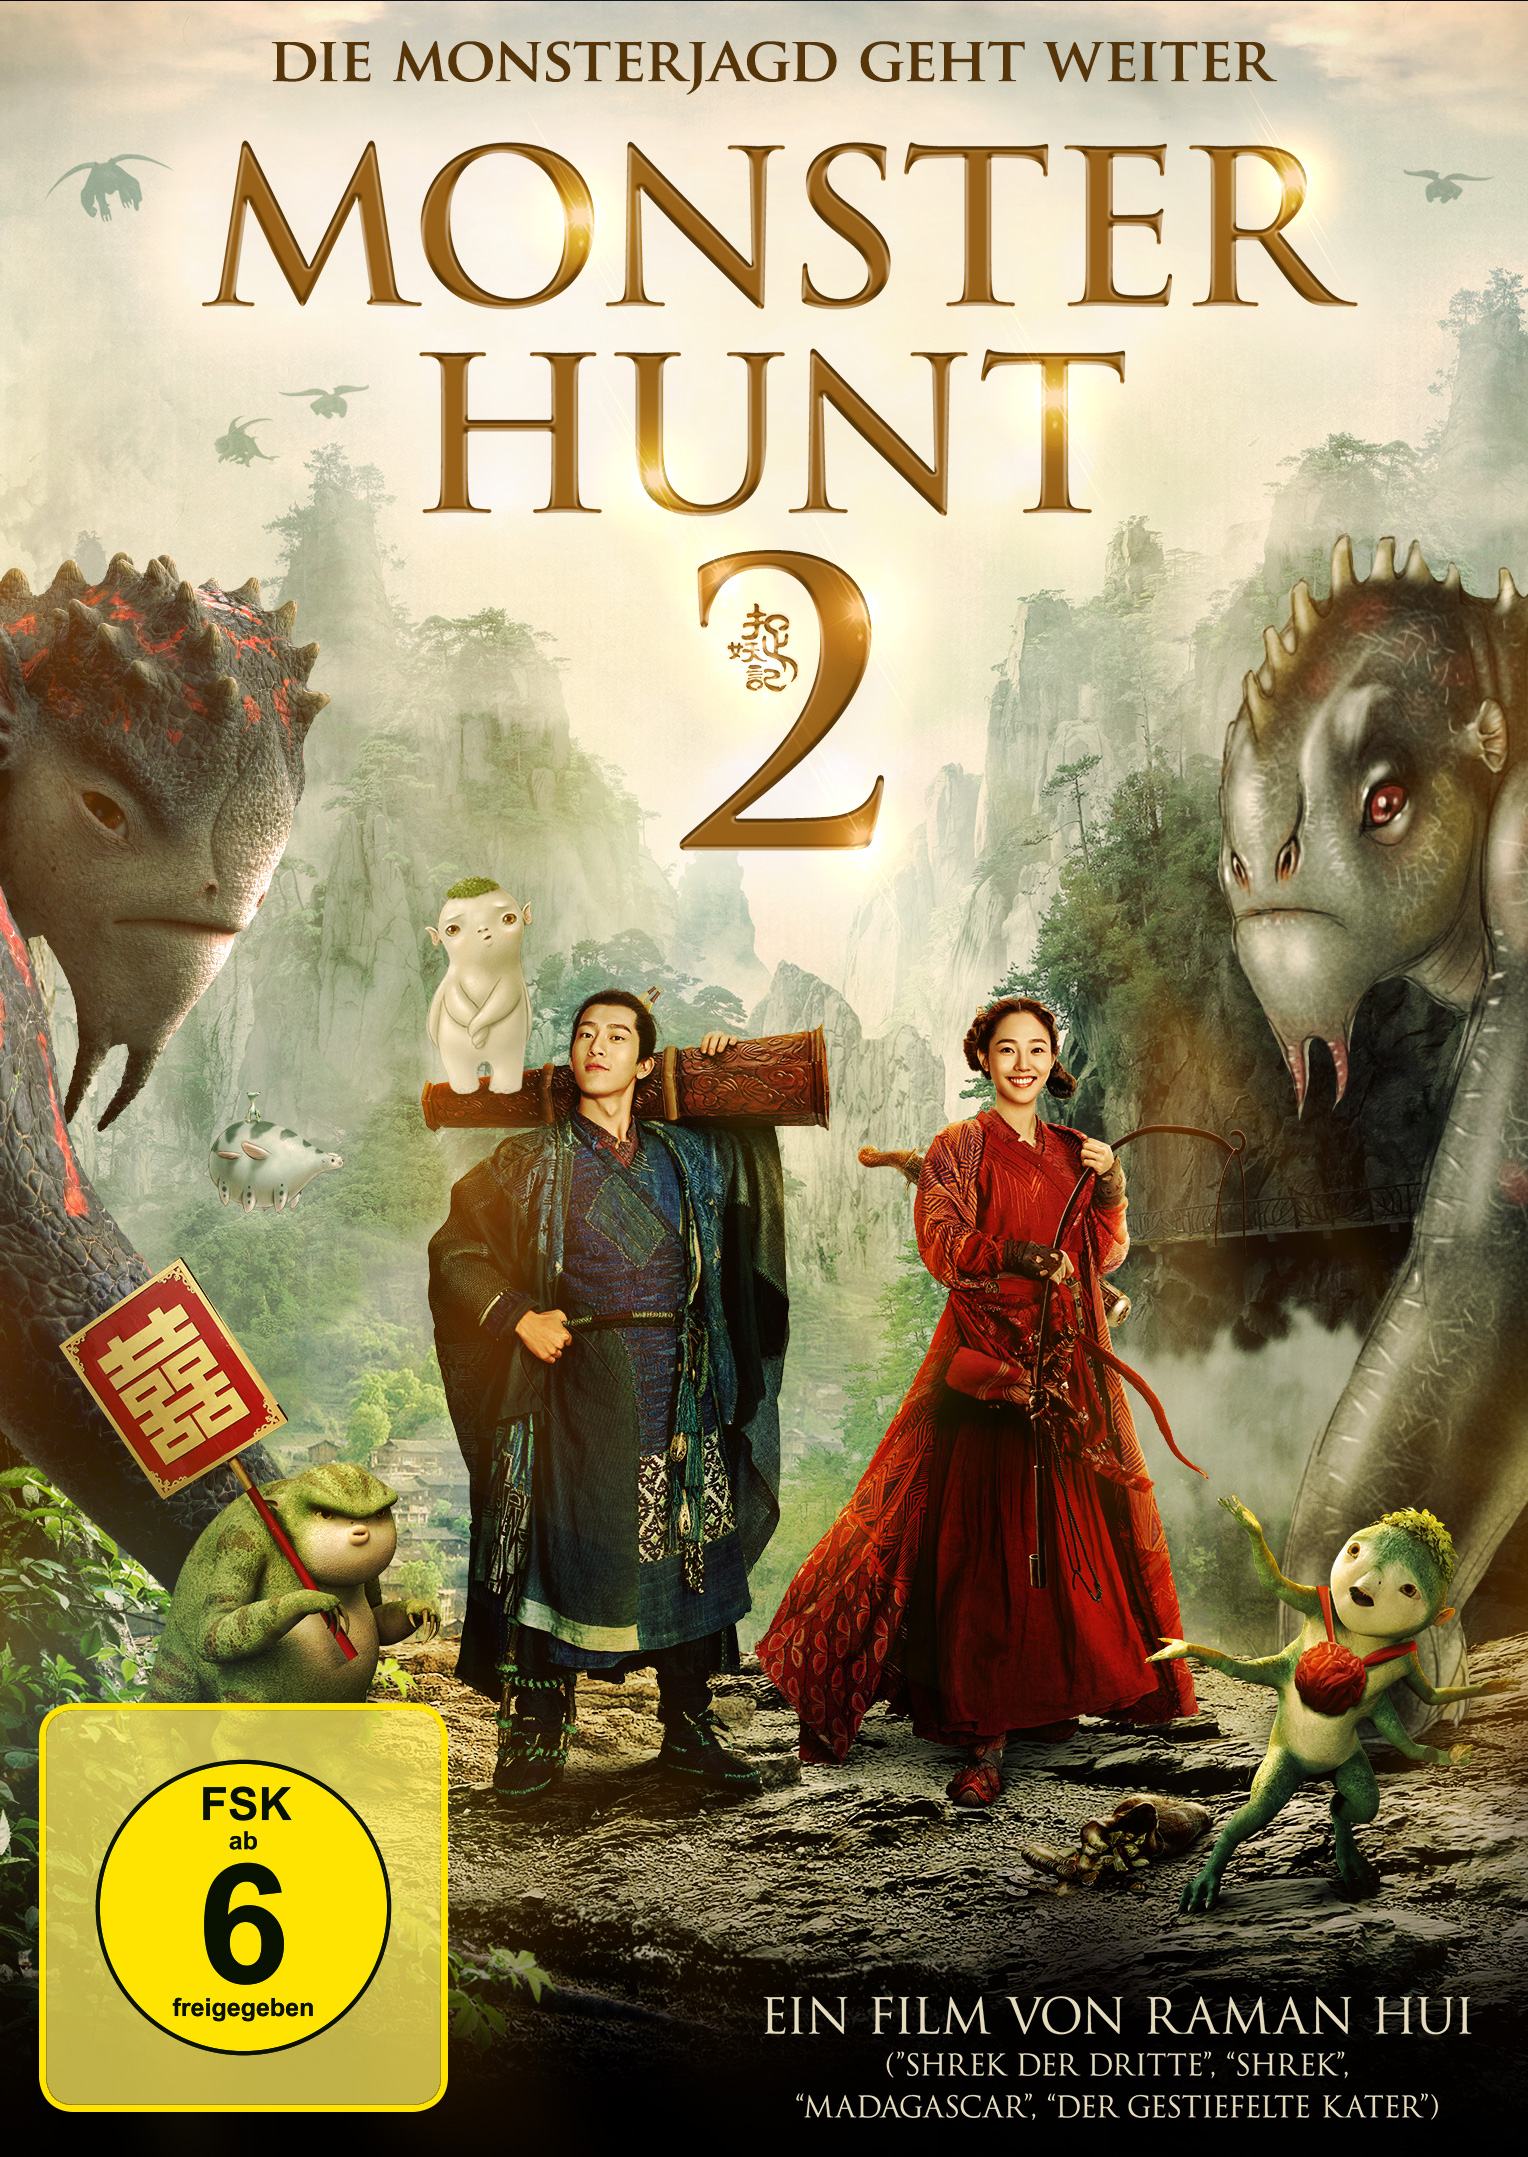 Chasseur De Monstres 2 Streaming : chasseur, monstres, streaming, Chasseur, Monstres, AlloCiné